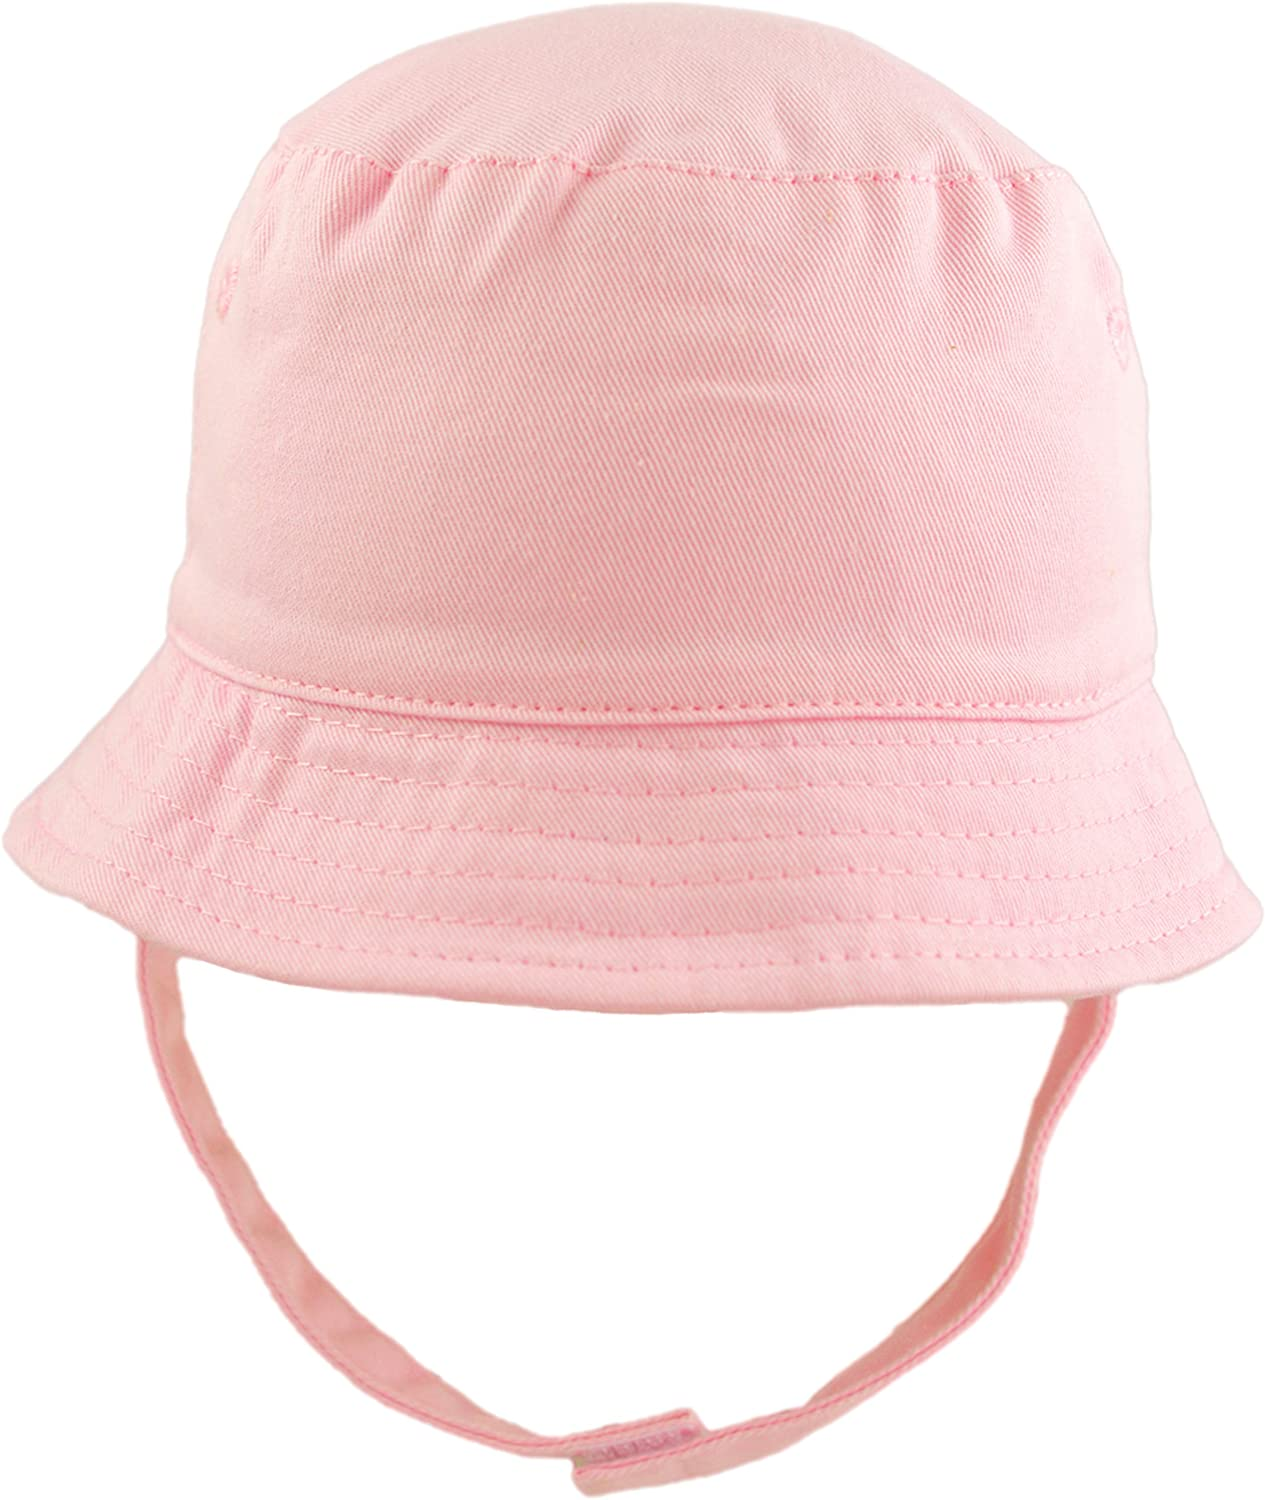 Pesci Baby Girls Sun Hat Summer Bucket Hats with Chin Strap Pink, 12-18 Months